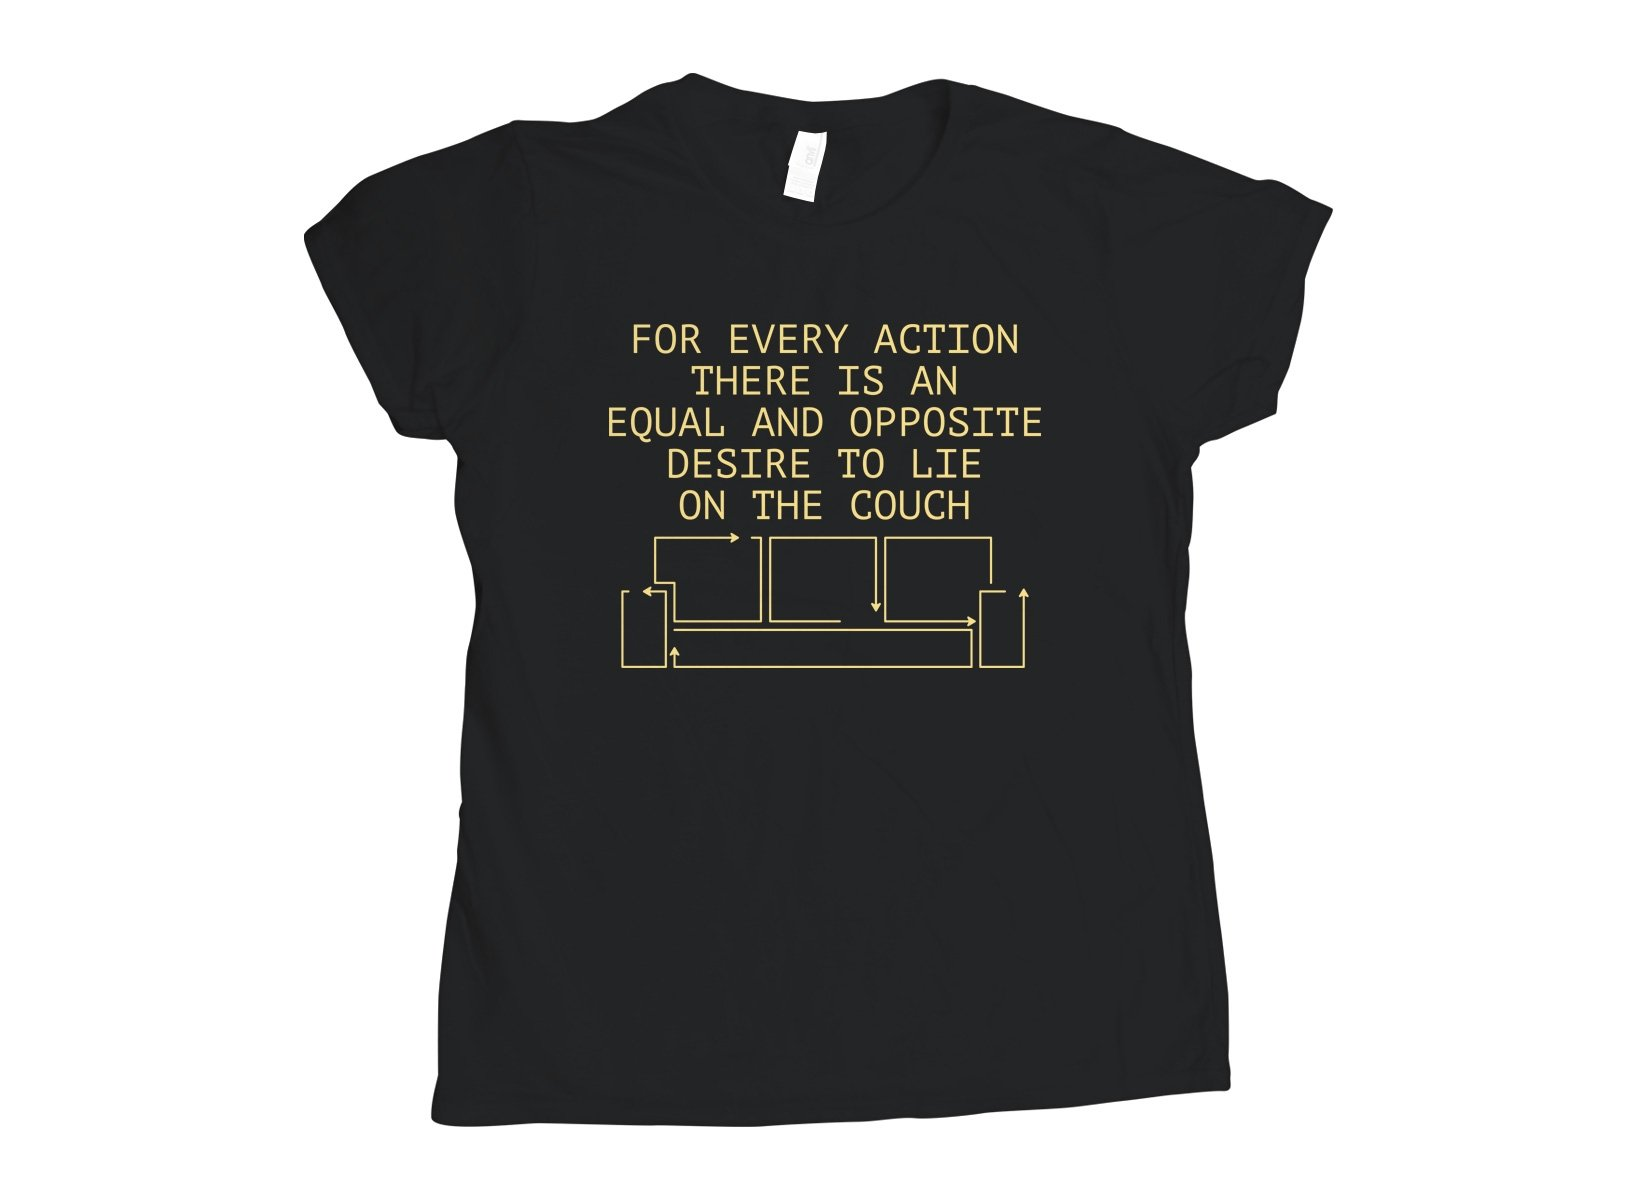 For Every Action There Is An Equal And Opposite Desire To Lie On The Couch on Womens T-Shirt